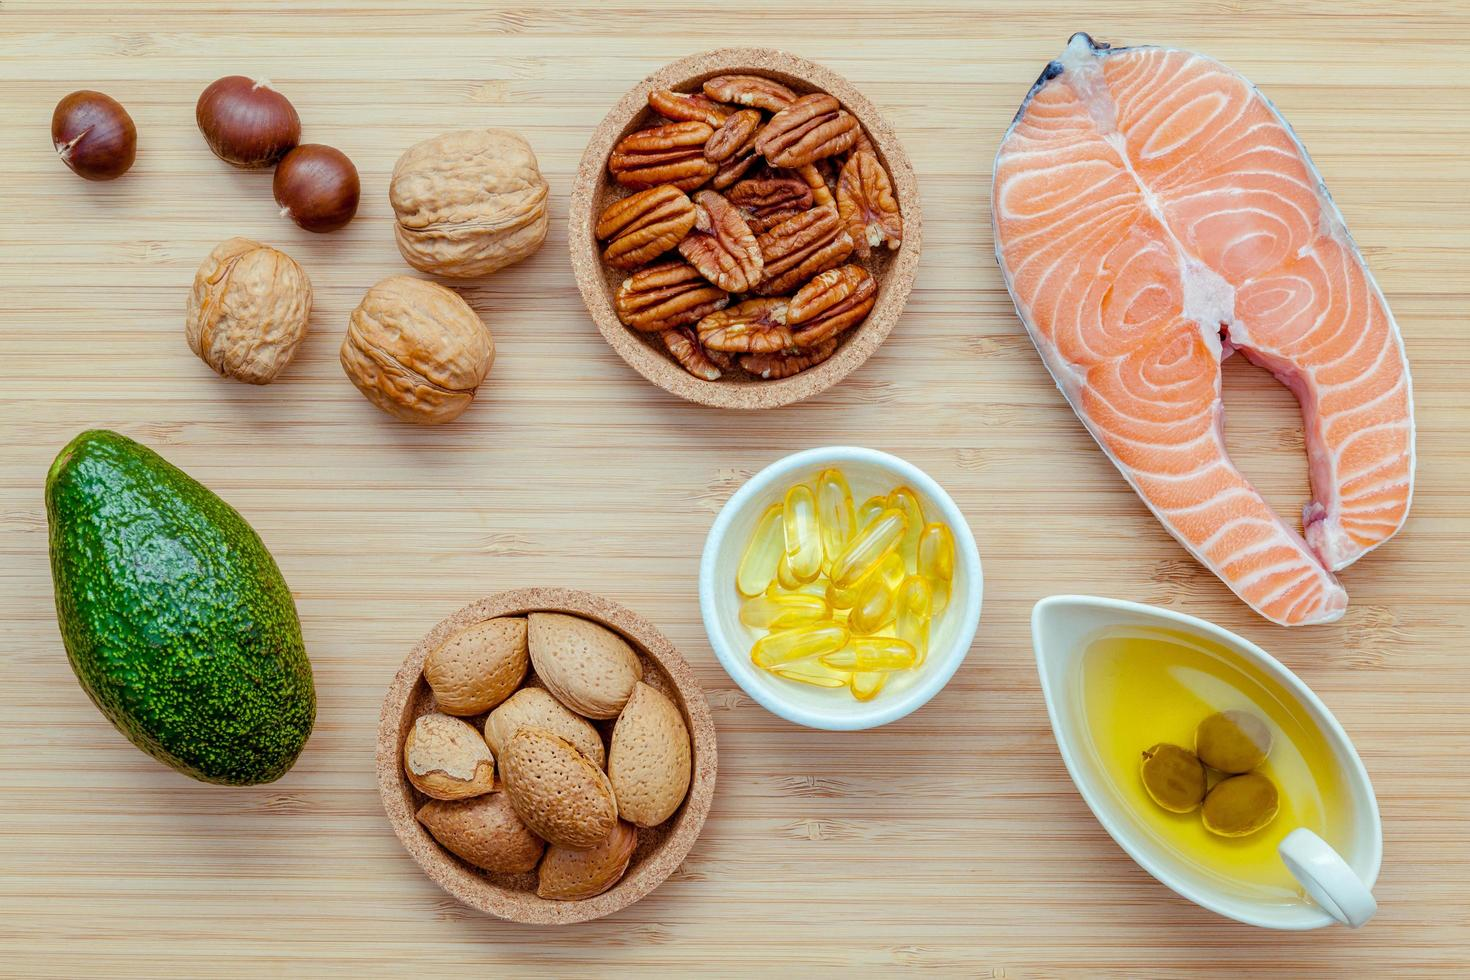 Selection of food sources containing omega 3 and unsaturated fats photo